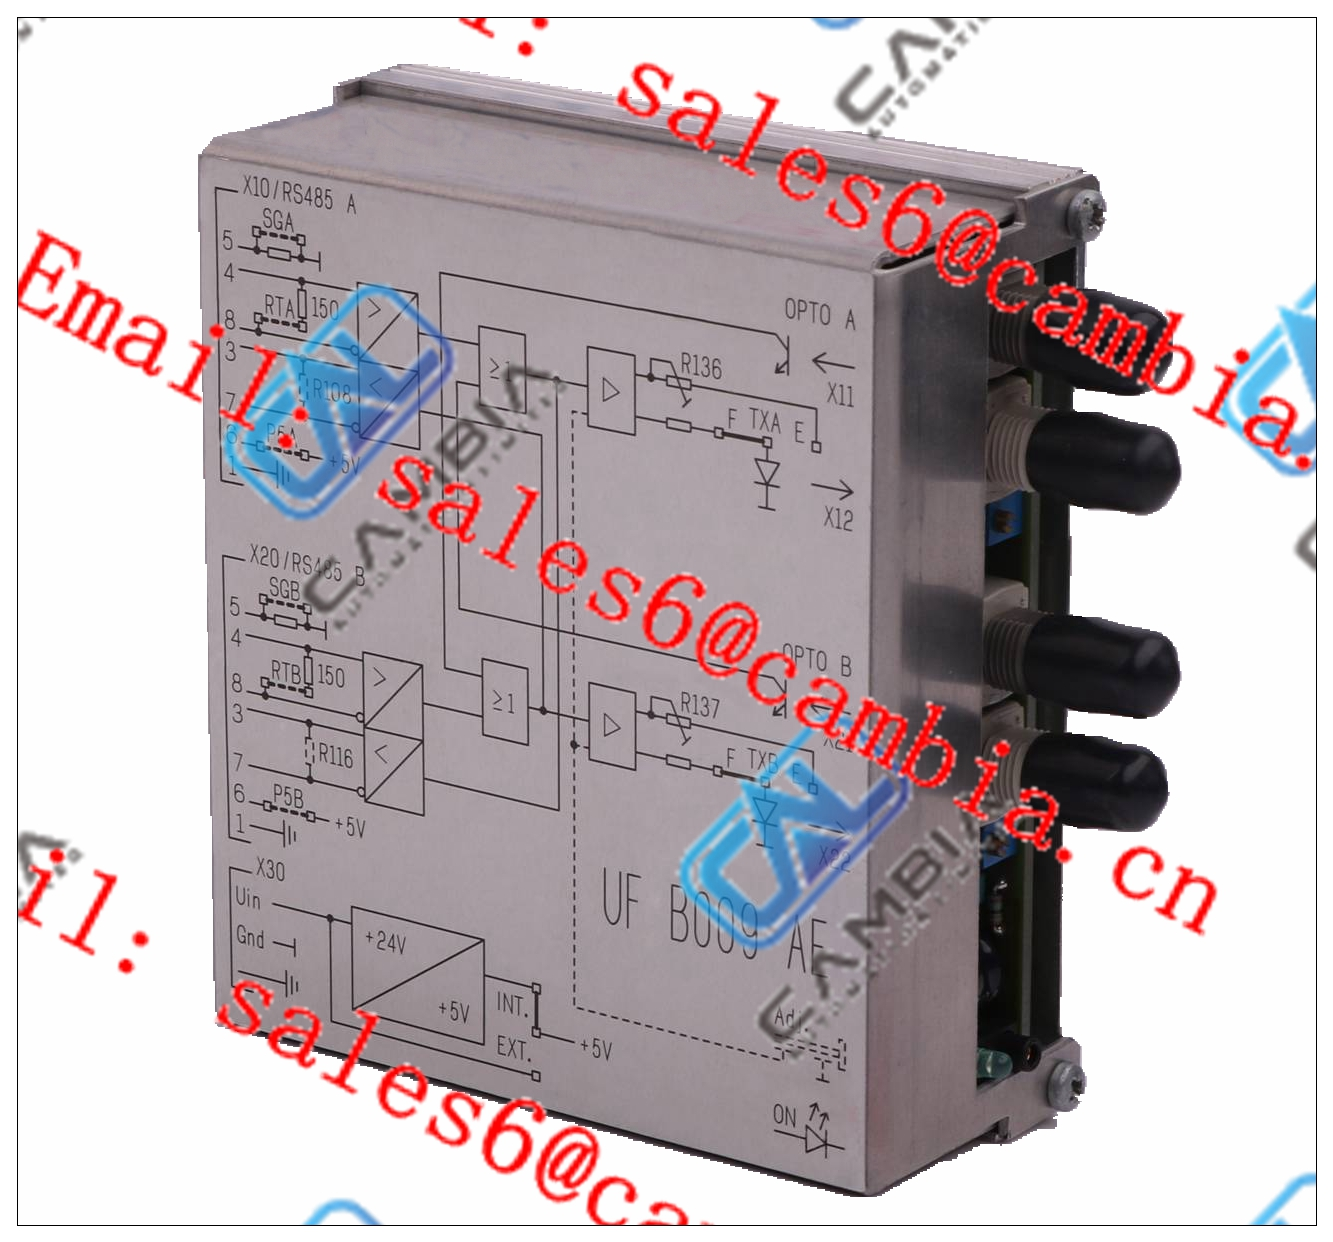 ABB	07 KT 97 07KT97 GJR5253000R0270	allen bradley power supply